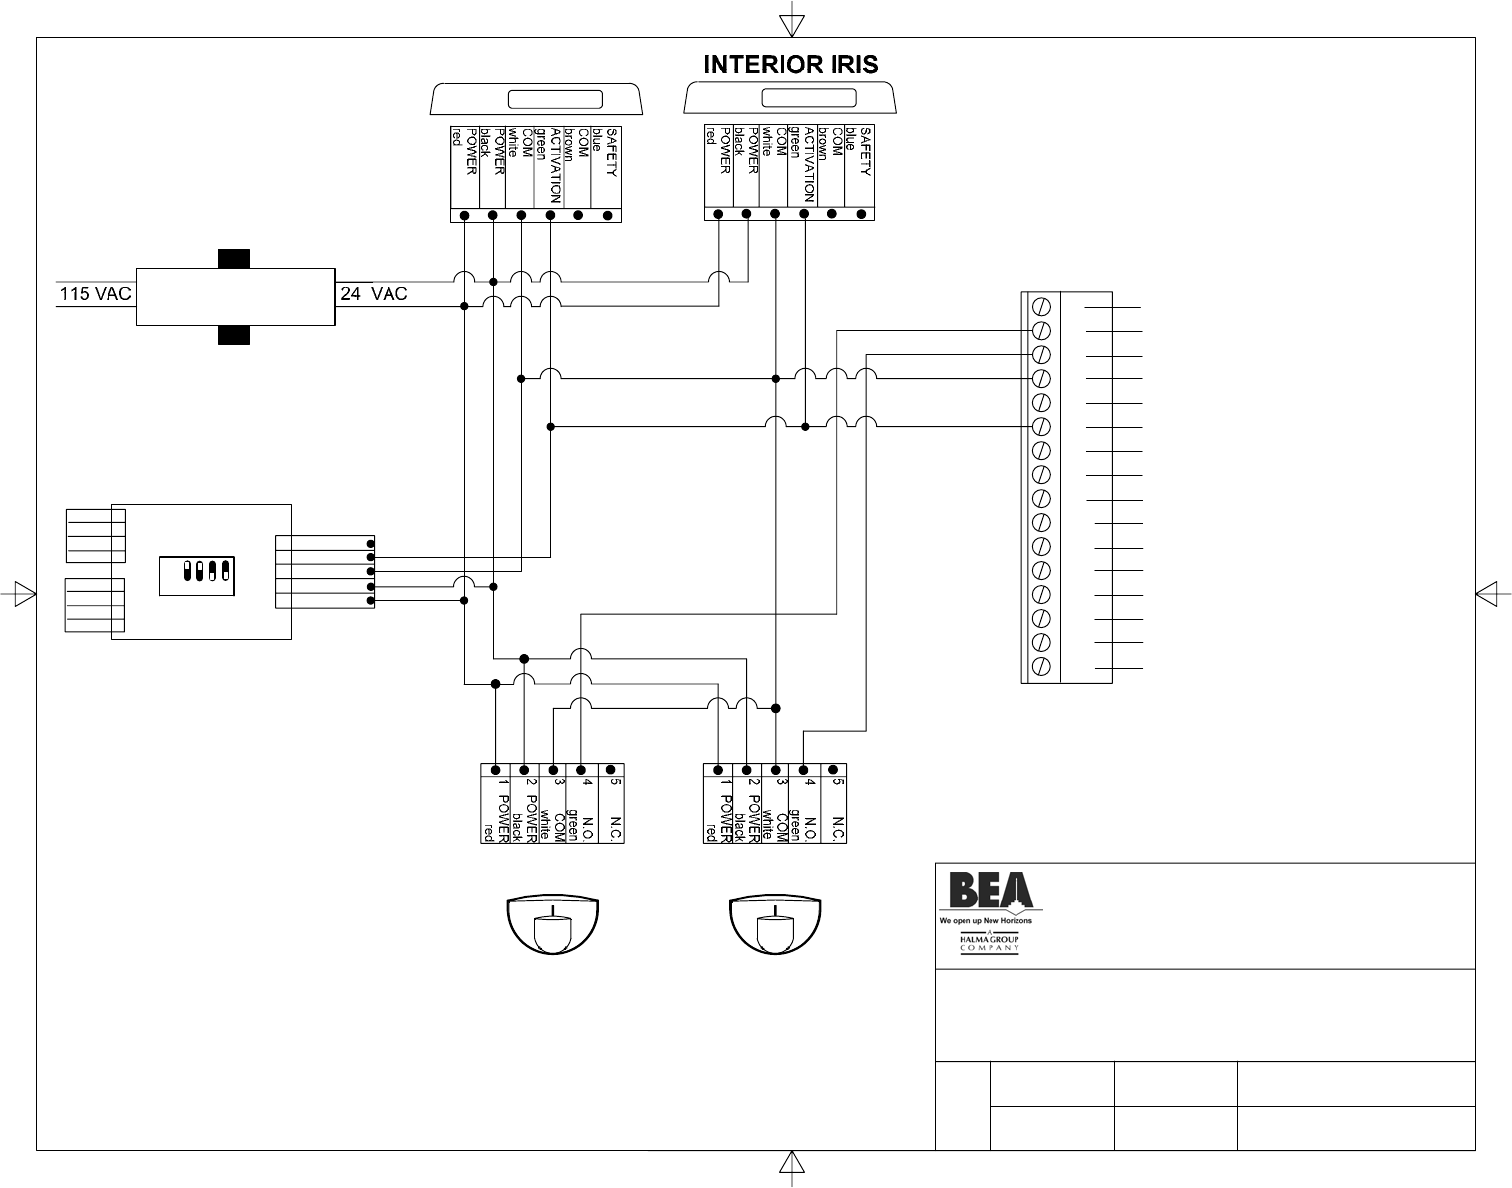 94039b03 c6f0 4630 ae4b cd4abc395ce4 bg1 bea switch c2150 user guide manualsonline com bea ixio wiring diagram at eliteediting.co